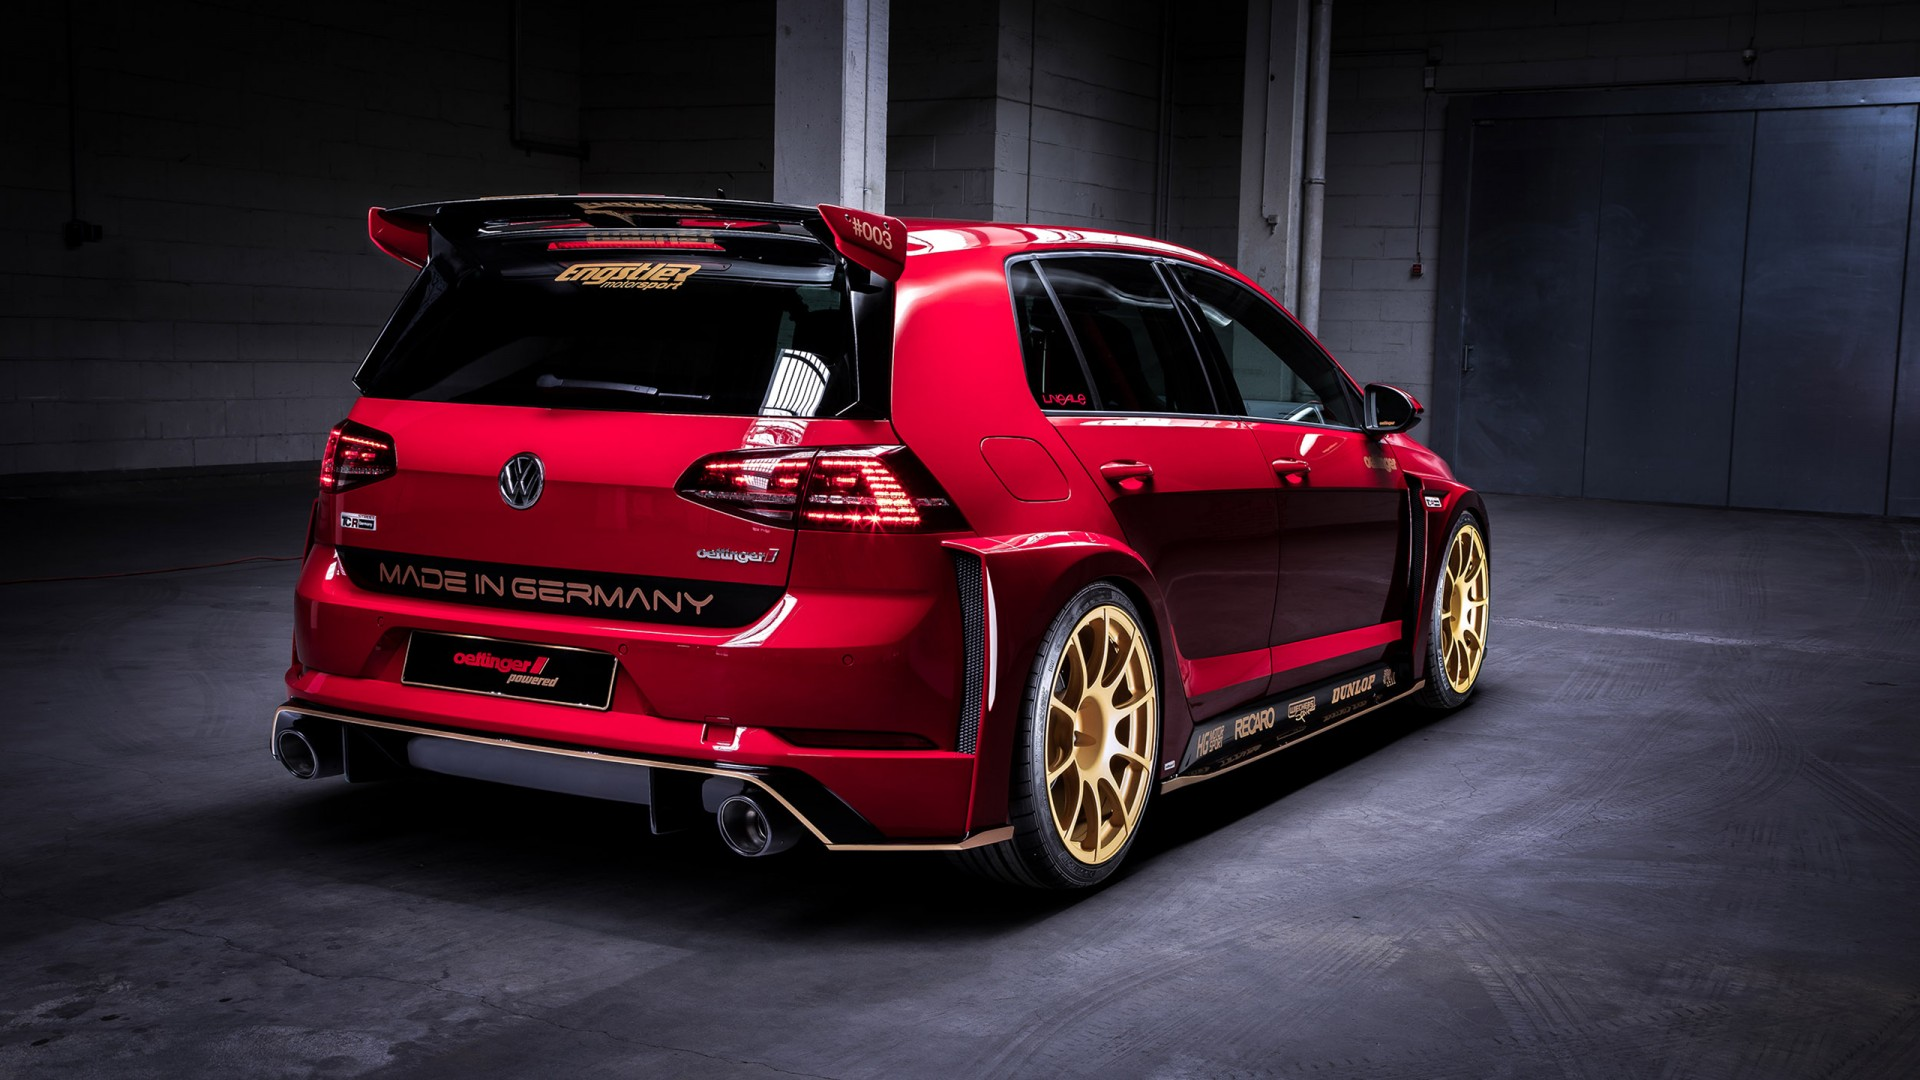 gti golf volkswagen tcr oettinger germany street hd pimp wallpapers 1080 1920 kasi flavors ride boys 1280 hdcarwallpapers february 1366